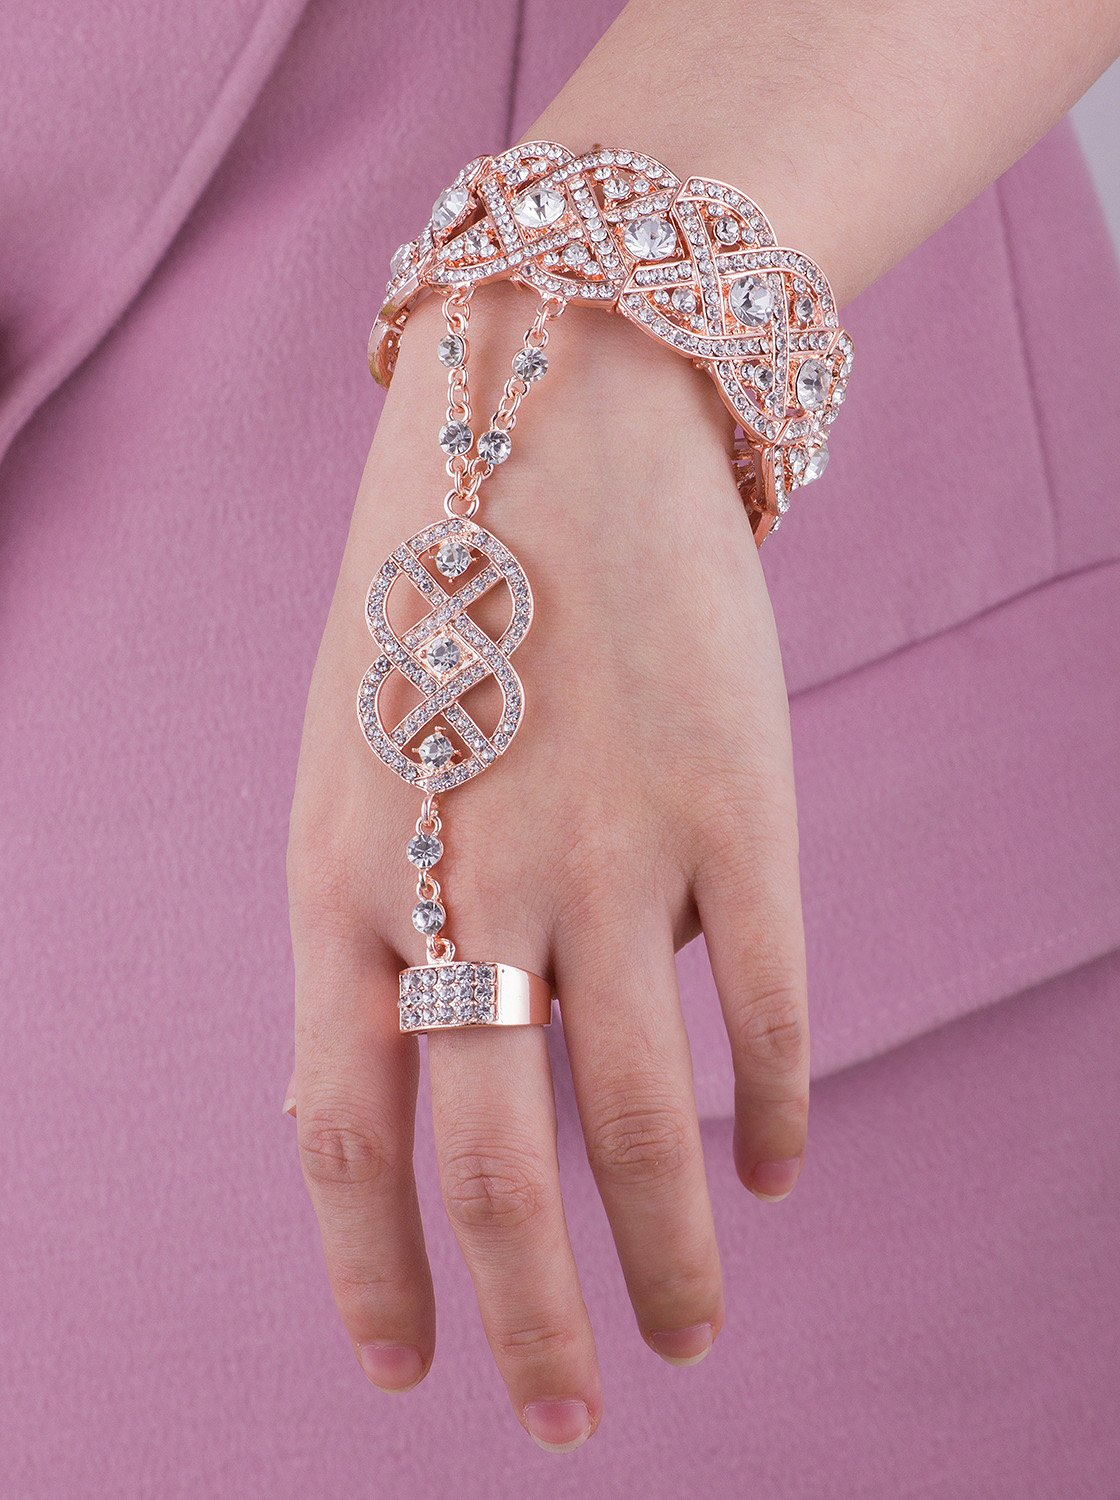 Vijiv Gold 1920s Flapper accessories Bracelet Ring Set Great Gatsby Style 20s Jewelry For Party by Vijiv (Image #4)